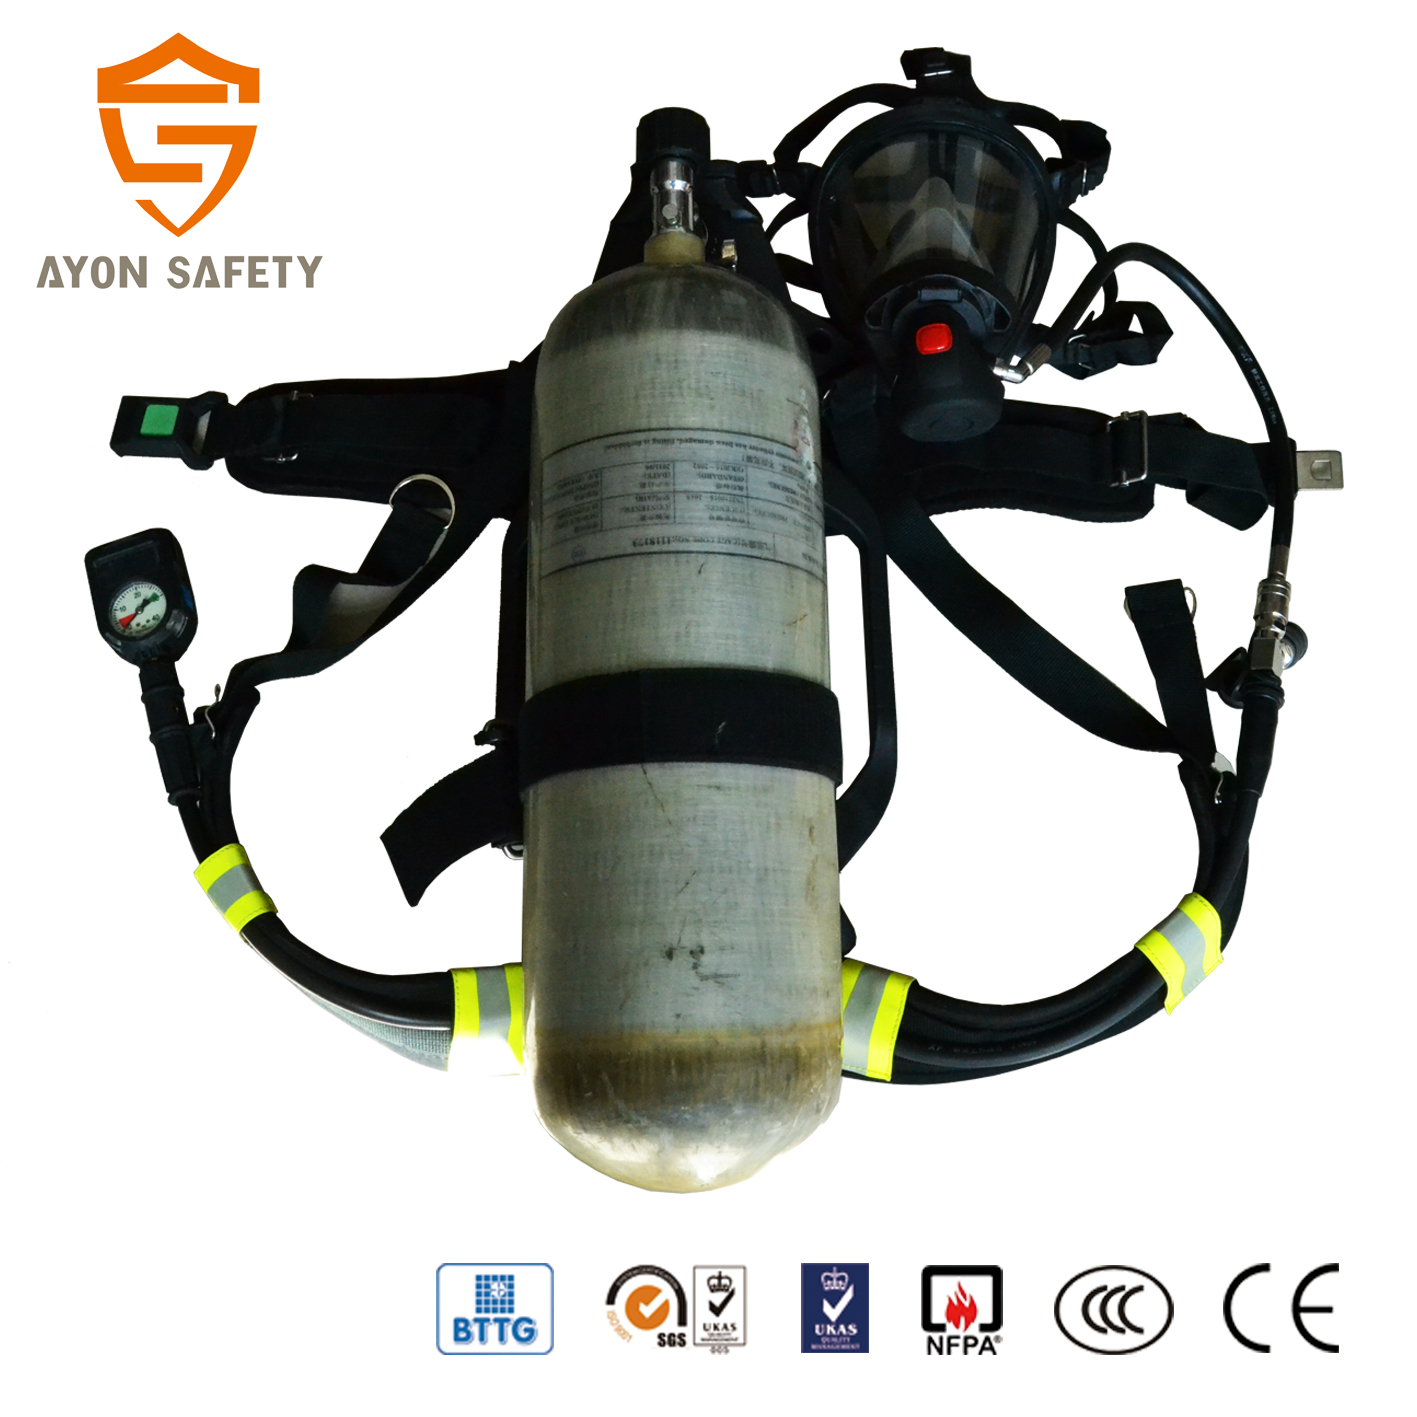 hight resolution of en137 self contained breathing apparatus scba with 9l carbon fiber cylinder for military and civil defence using ayonsafety